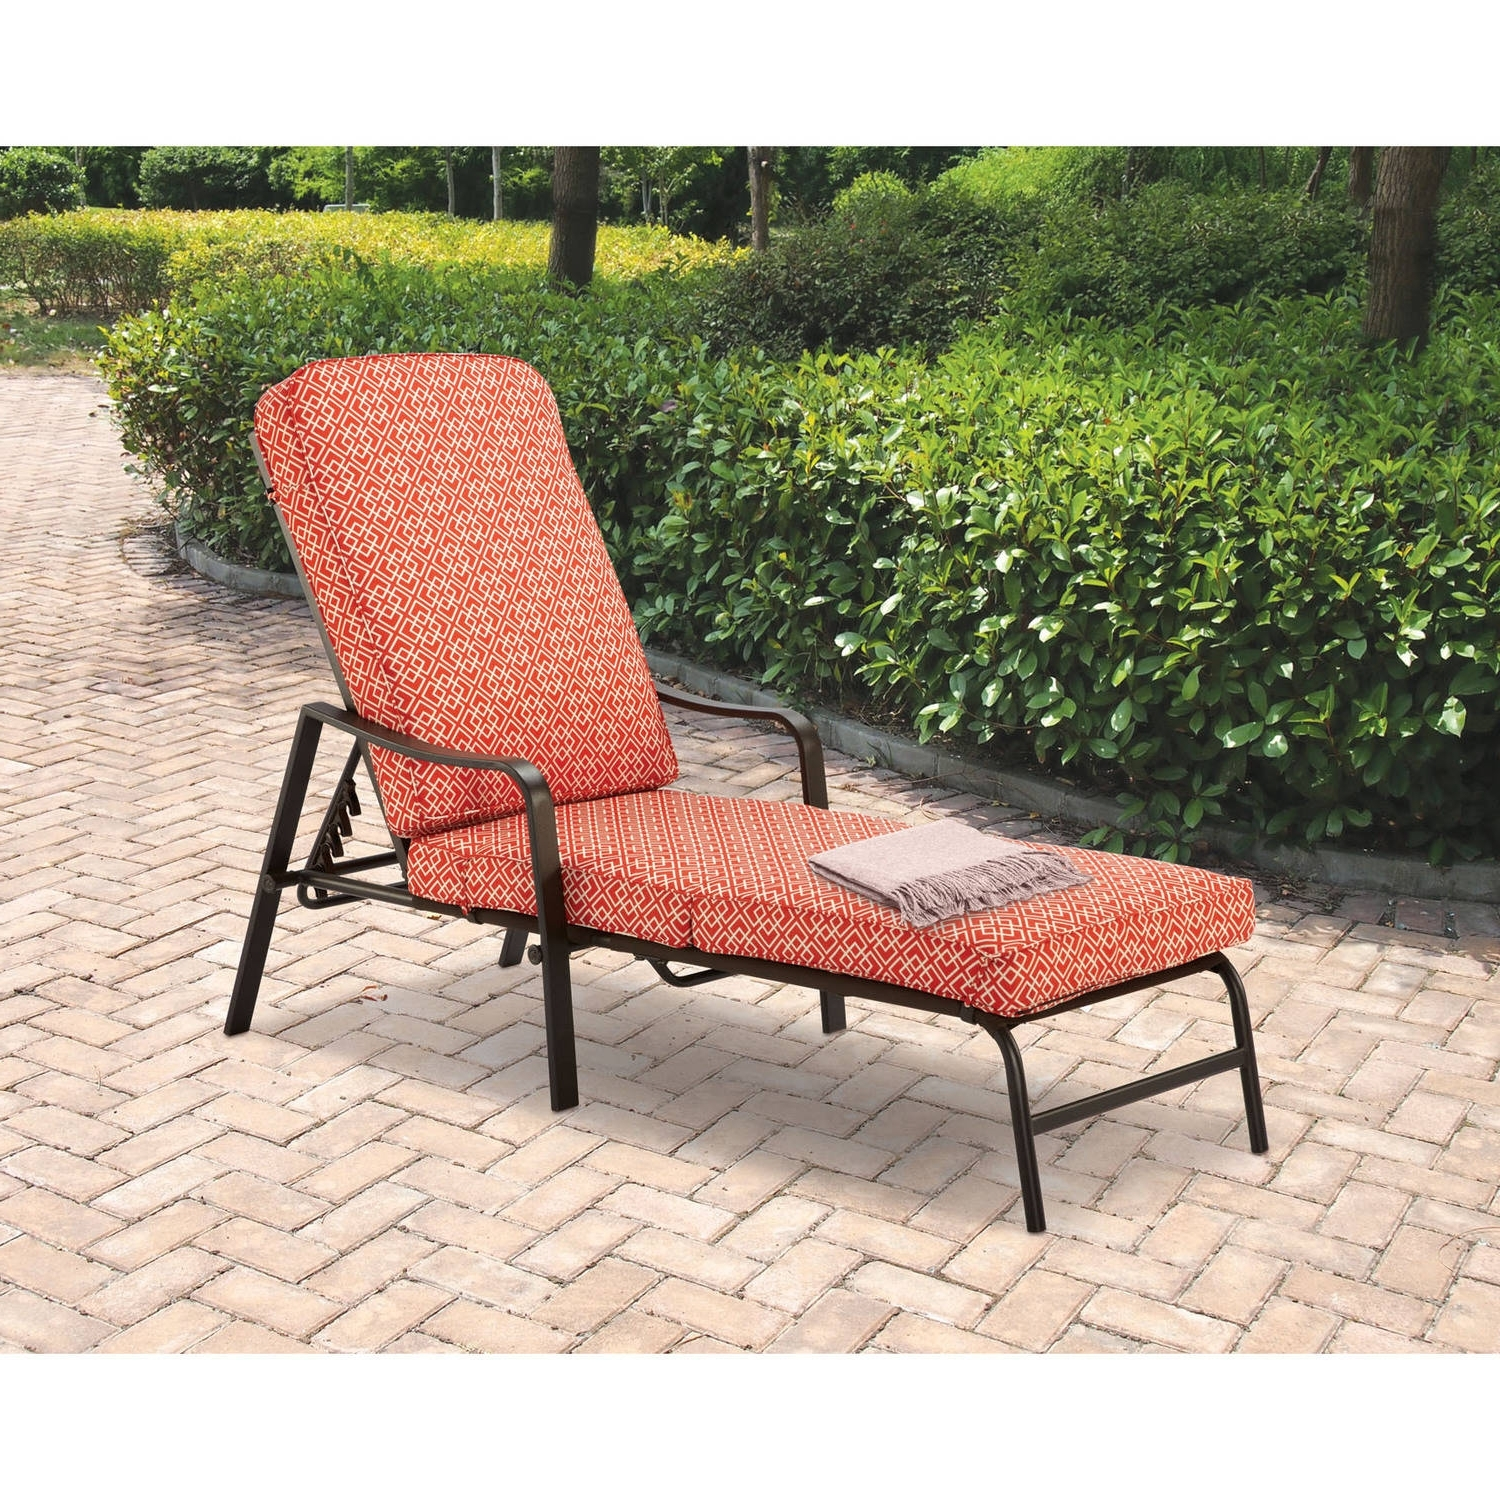 Mainstays Outdoor Chaise Lounge, Orange Geo Pattern – Walmart With 2018 Chaise Lounge Chairs With Cushions (View 14 of 15)